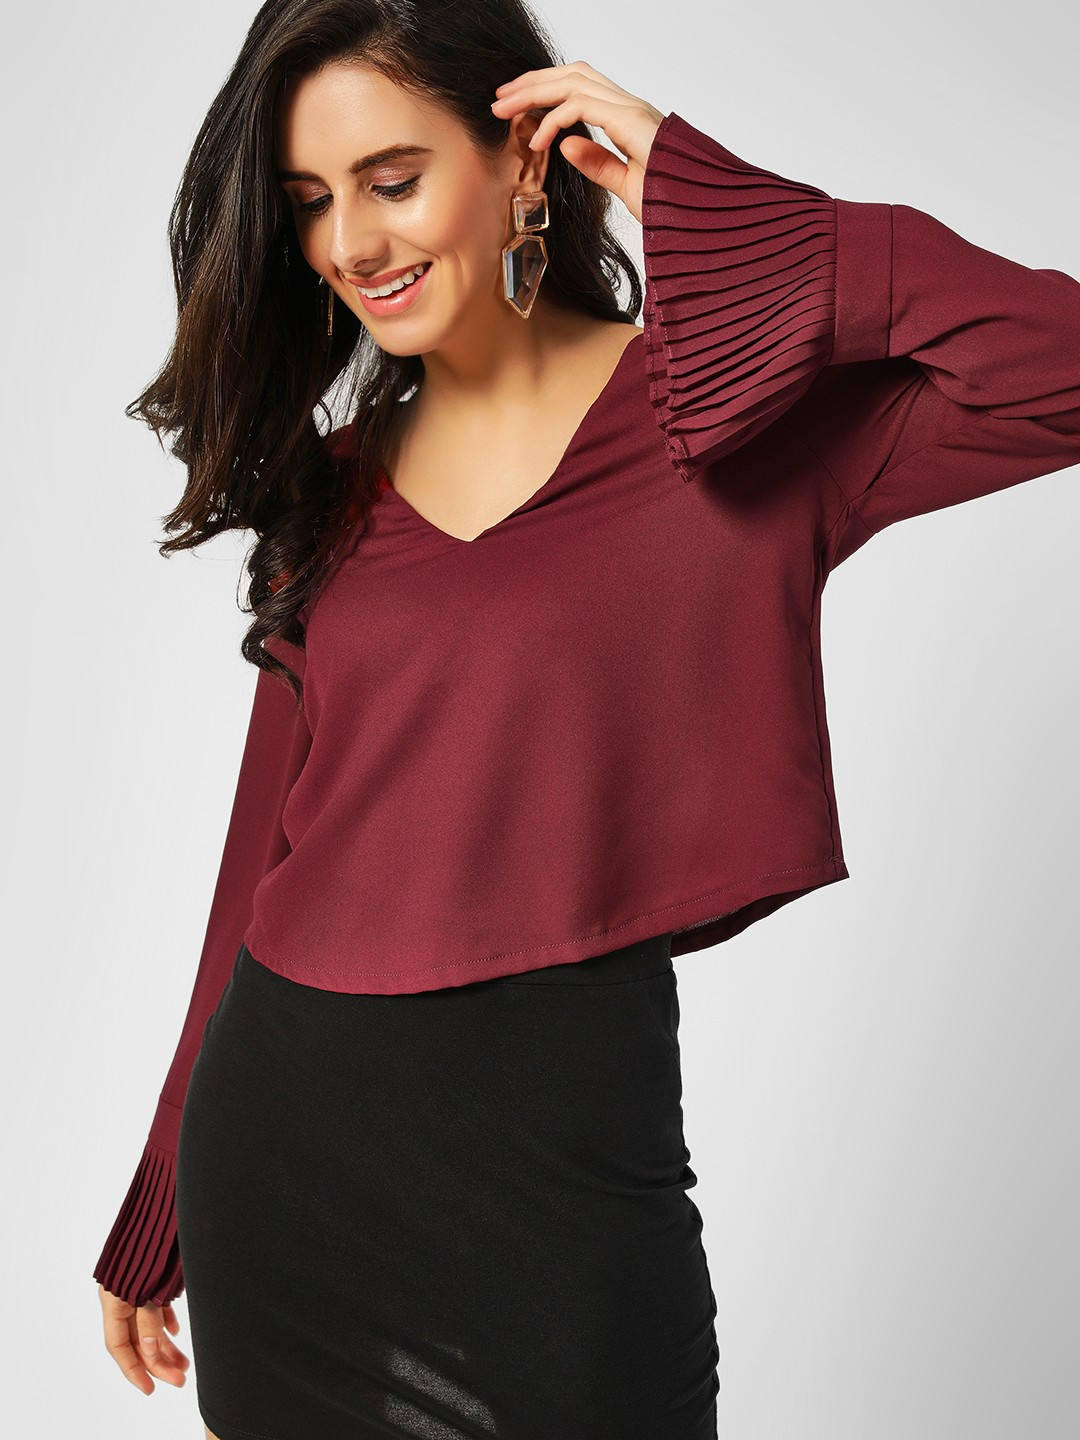 Lola May Wine Pleated Bell Sleeve Crop Top 1